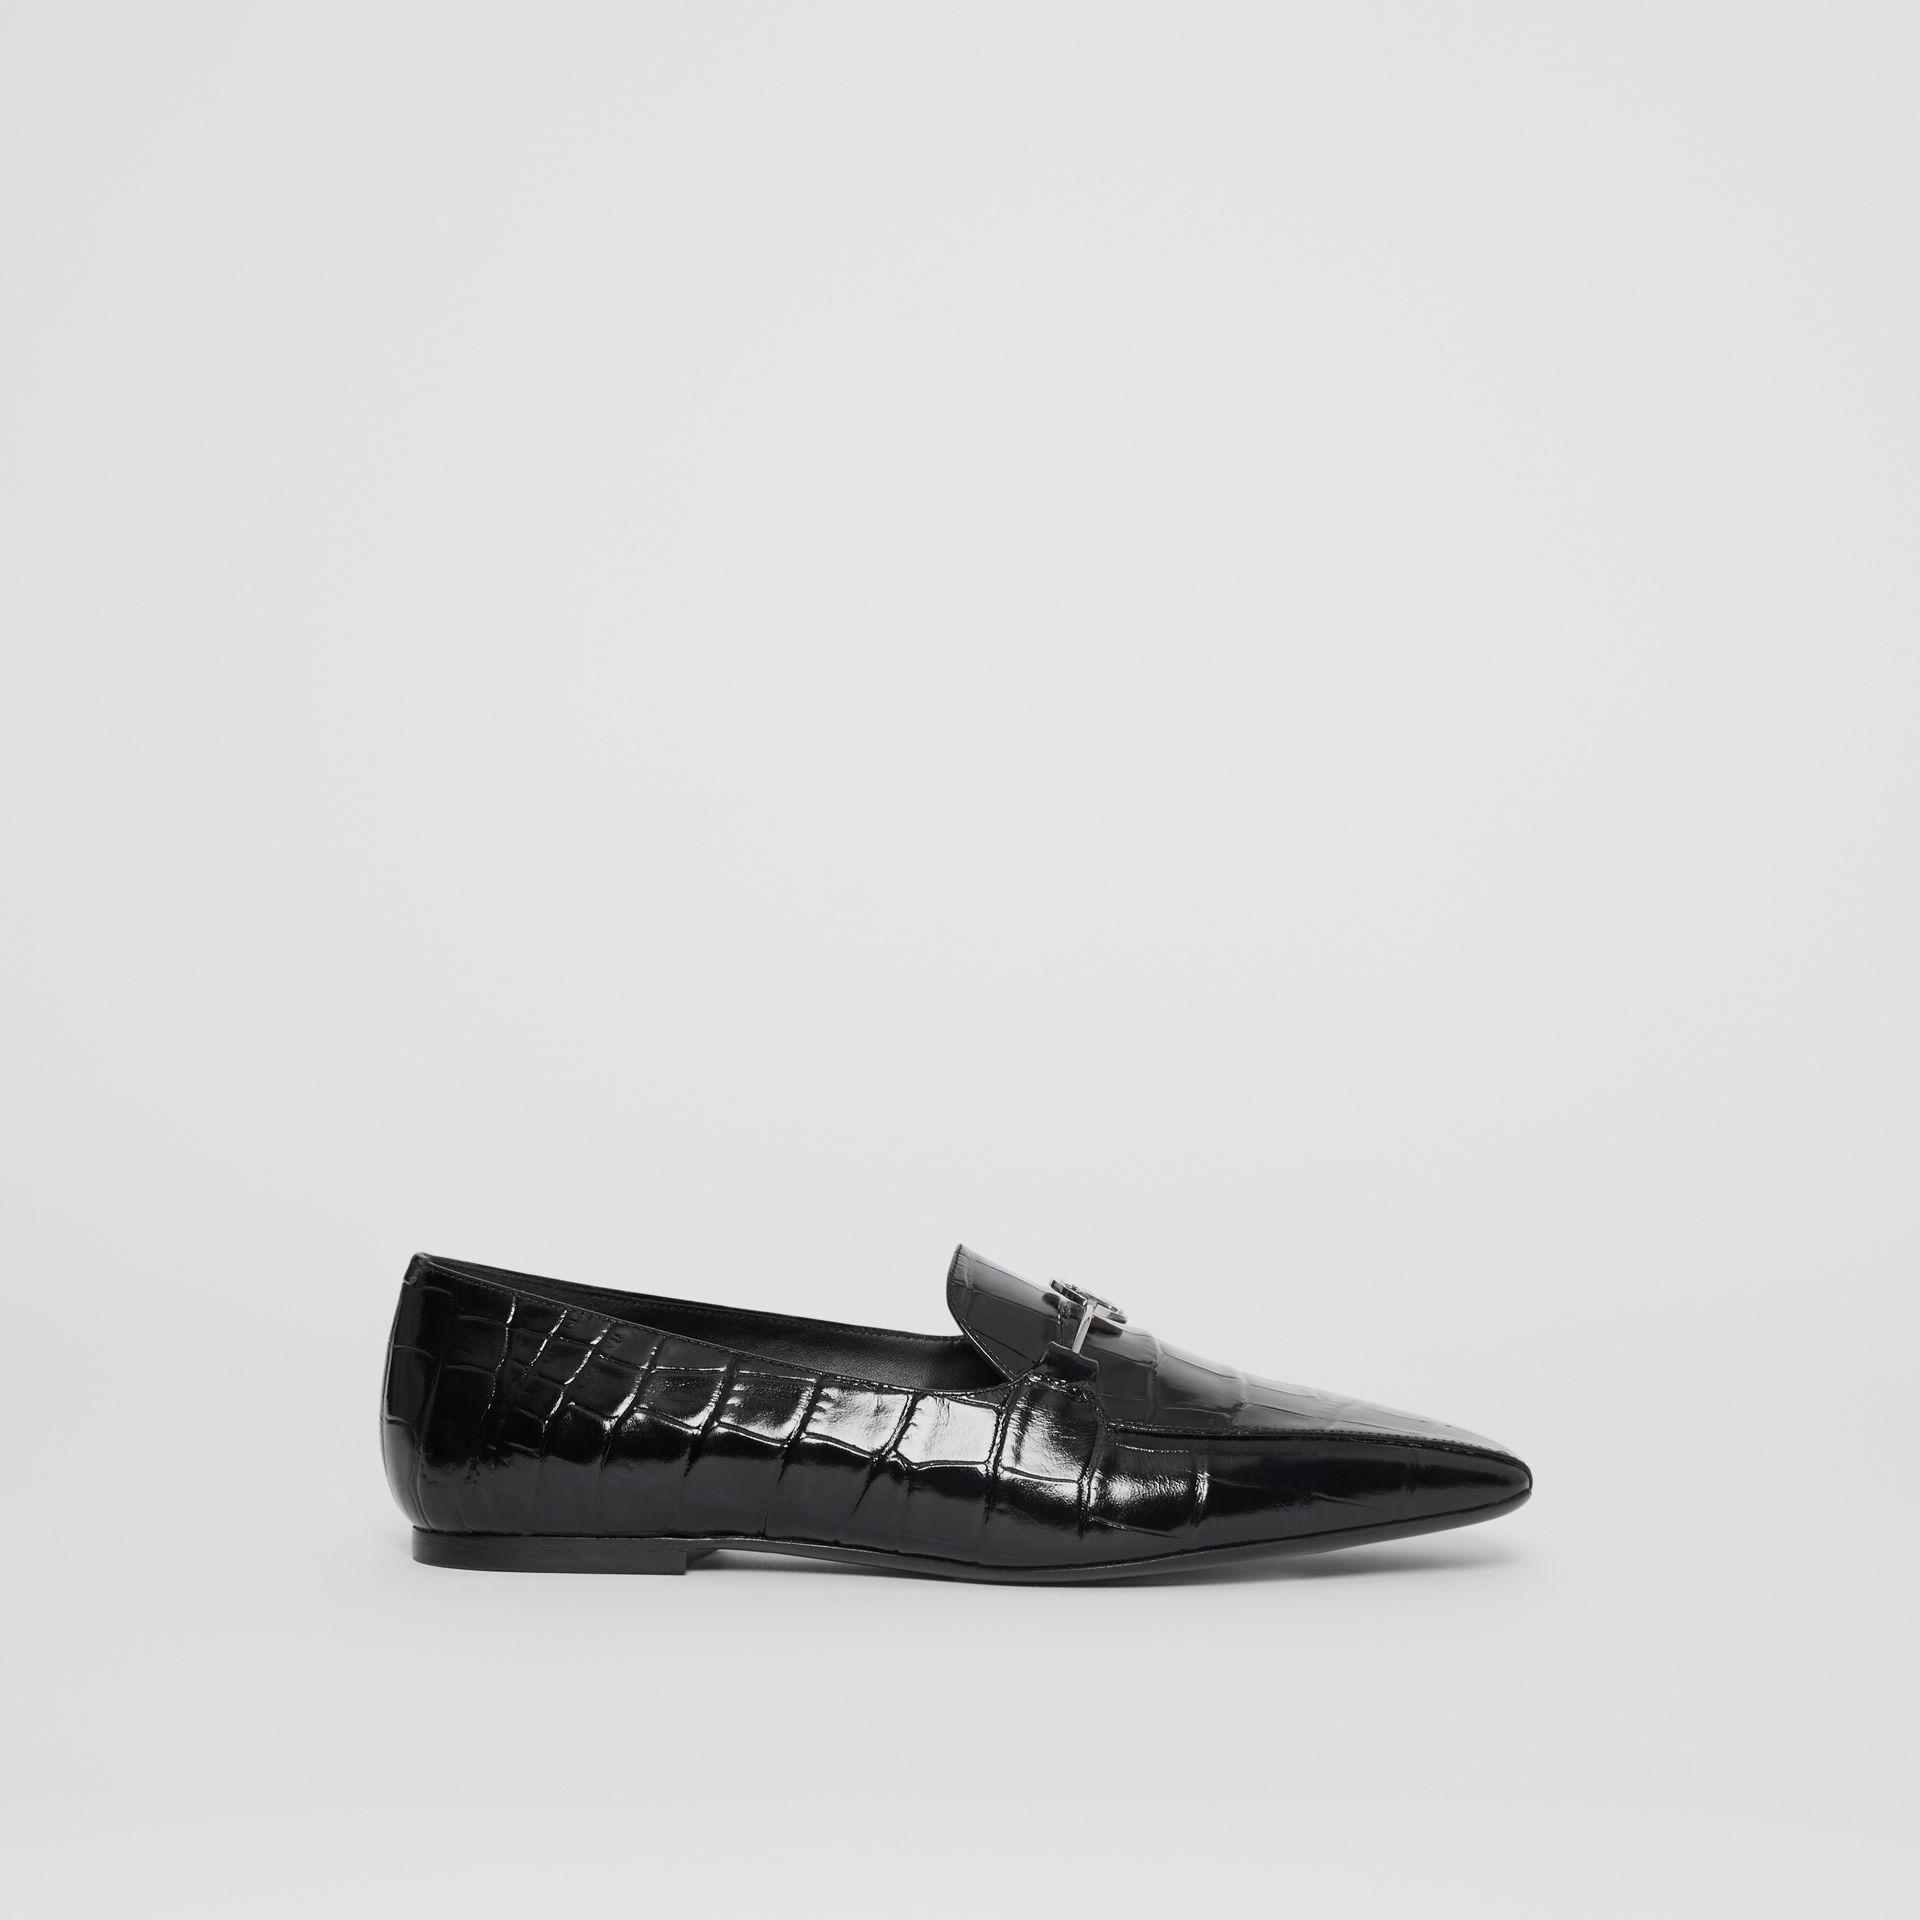 Monogram Motif Embossed Leather Loafers in Black - Women | Burberry - gallery image 5